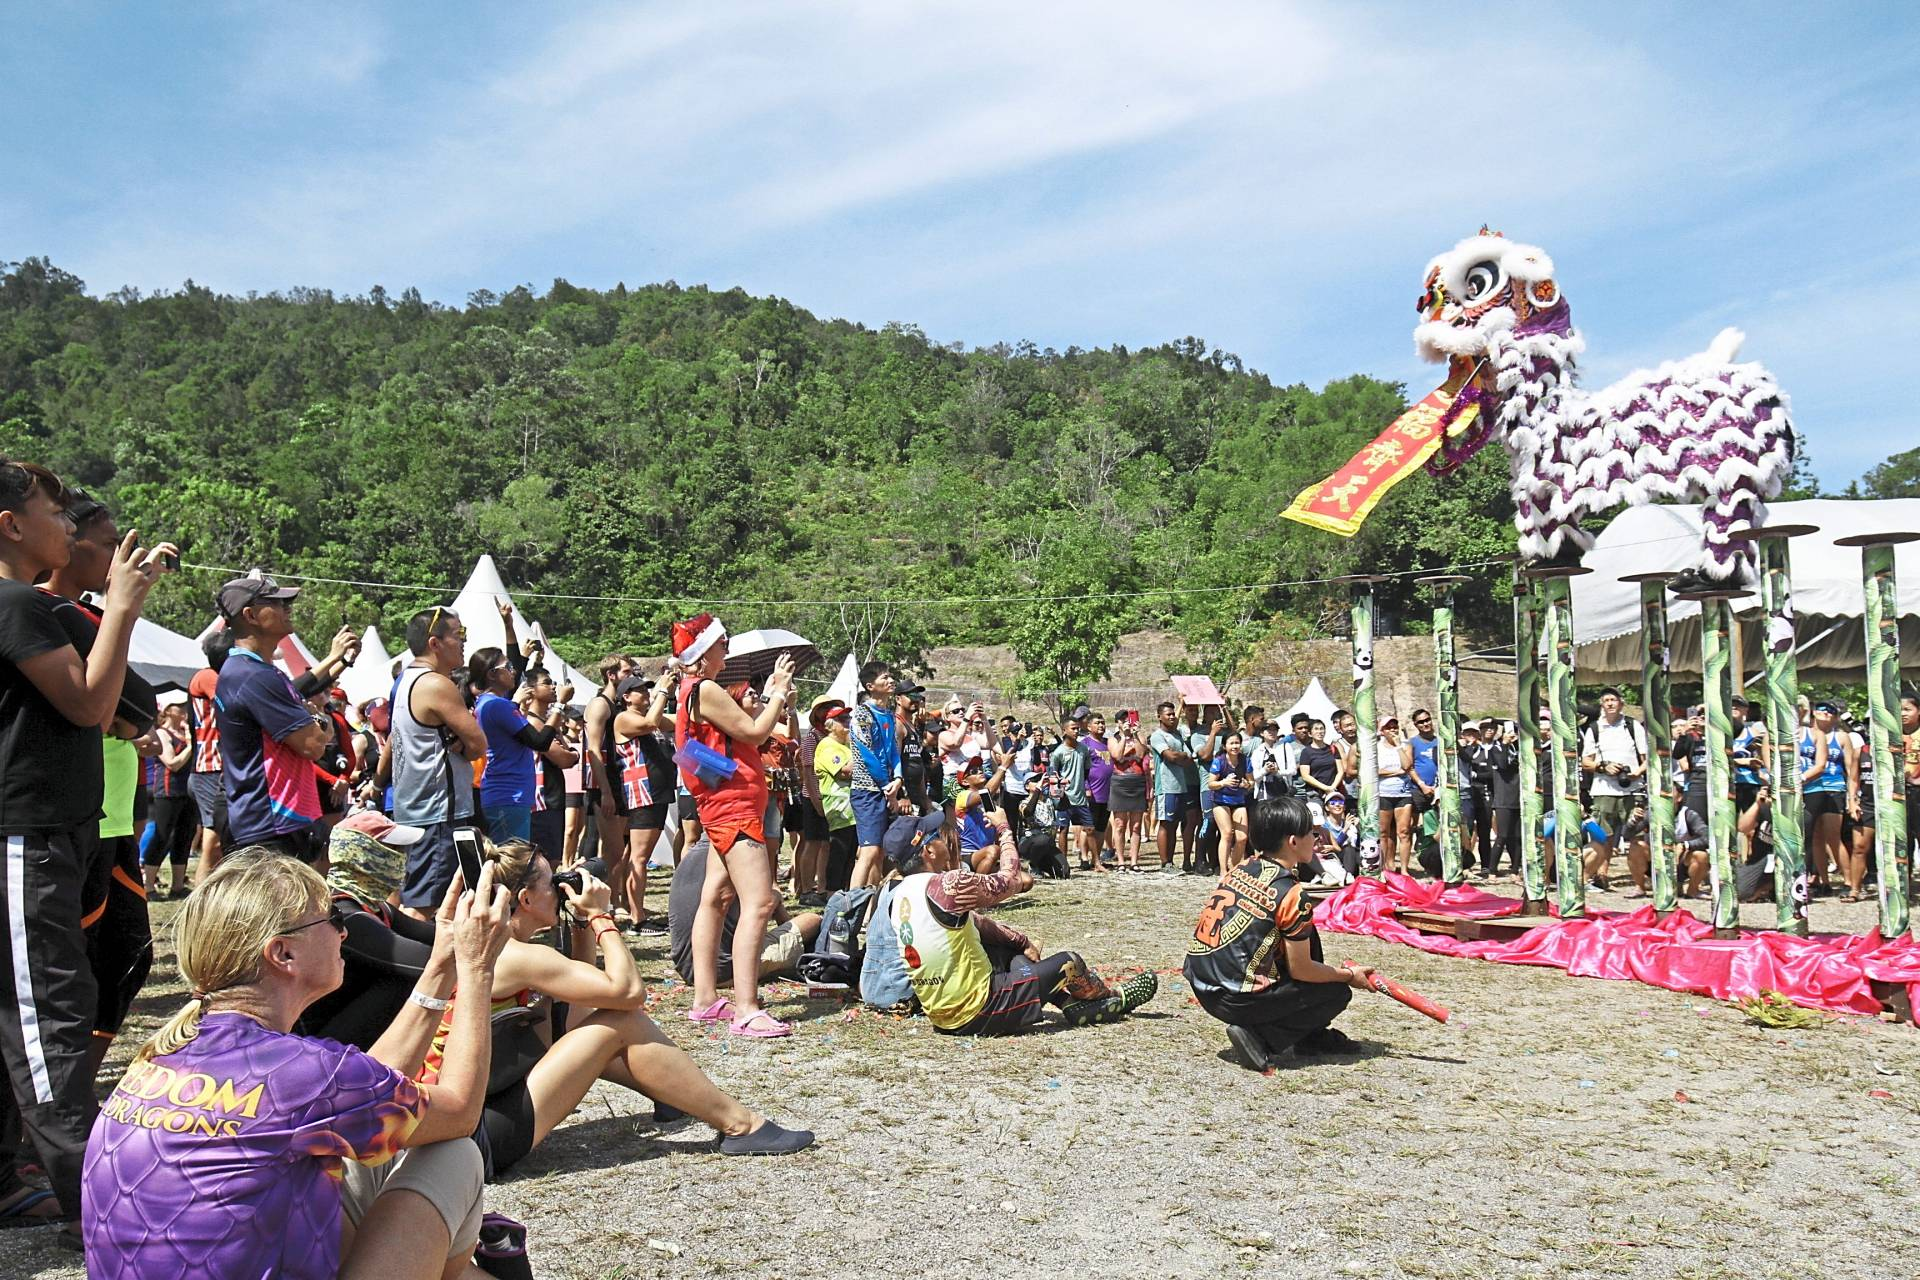 The crowd being entertained by a lion dance performance on stilts.